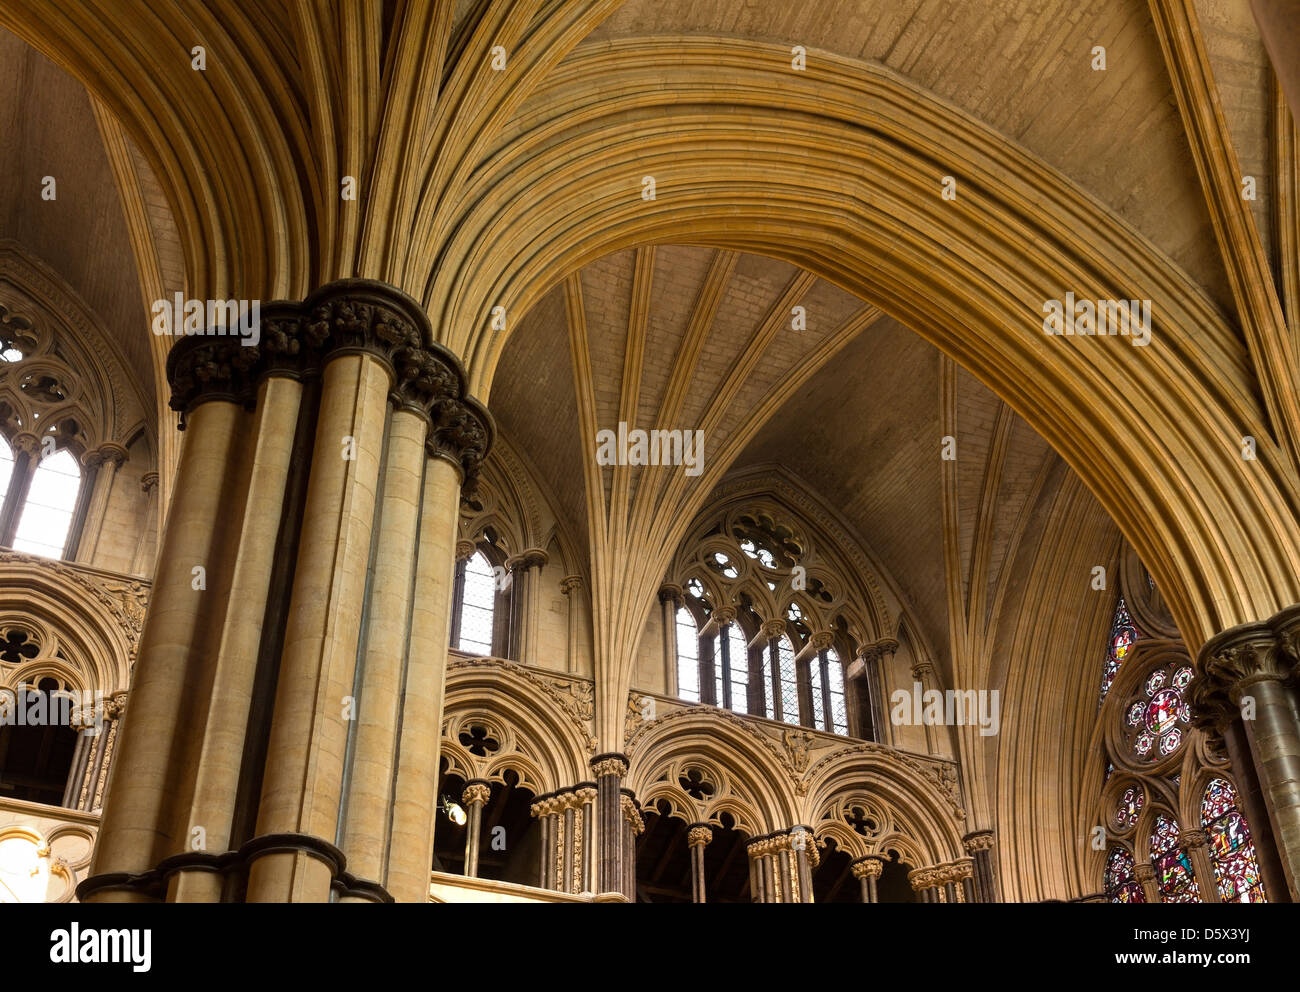 Pointed Gothic Masonry Arches Stone Pillars And Vaulted Ceilings Lincoln Cathedral Lincolnshire England UK